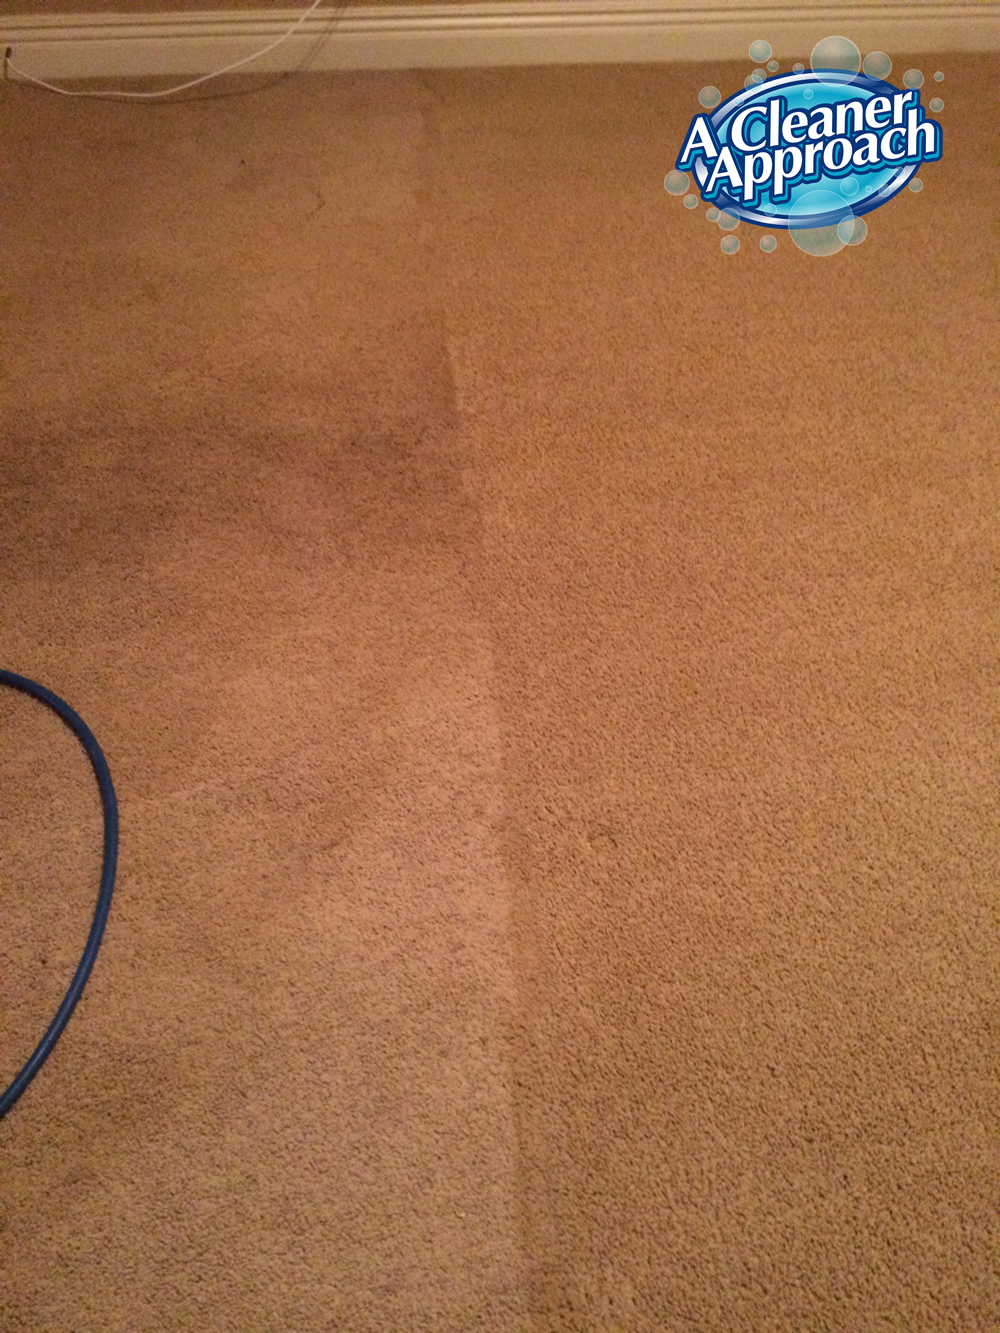 Carpet & Area Rug Cleaning 7